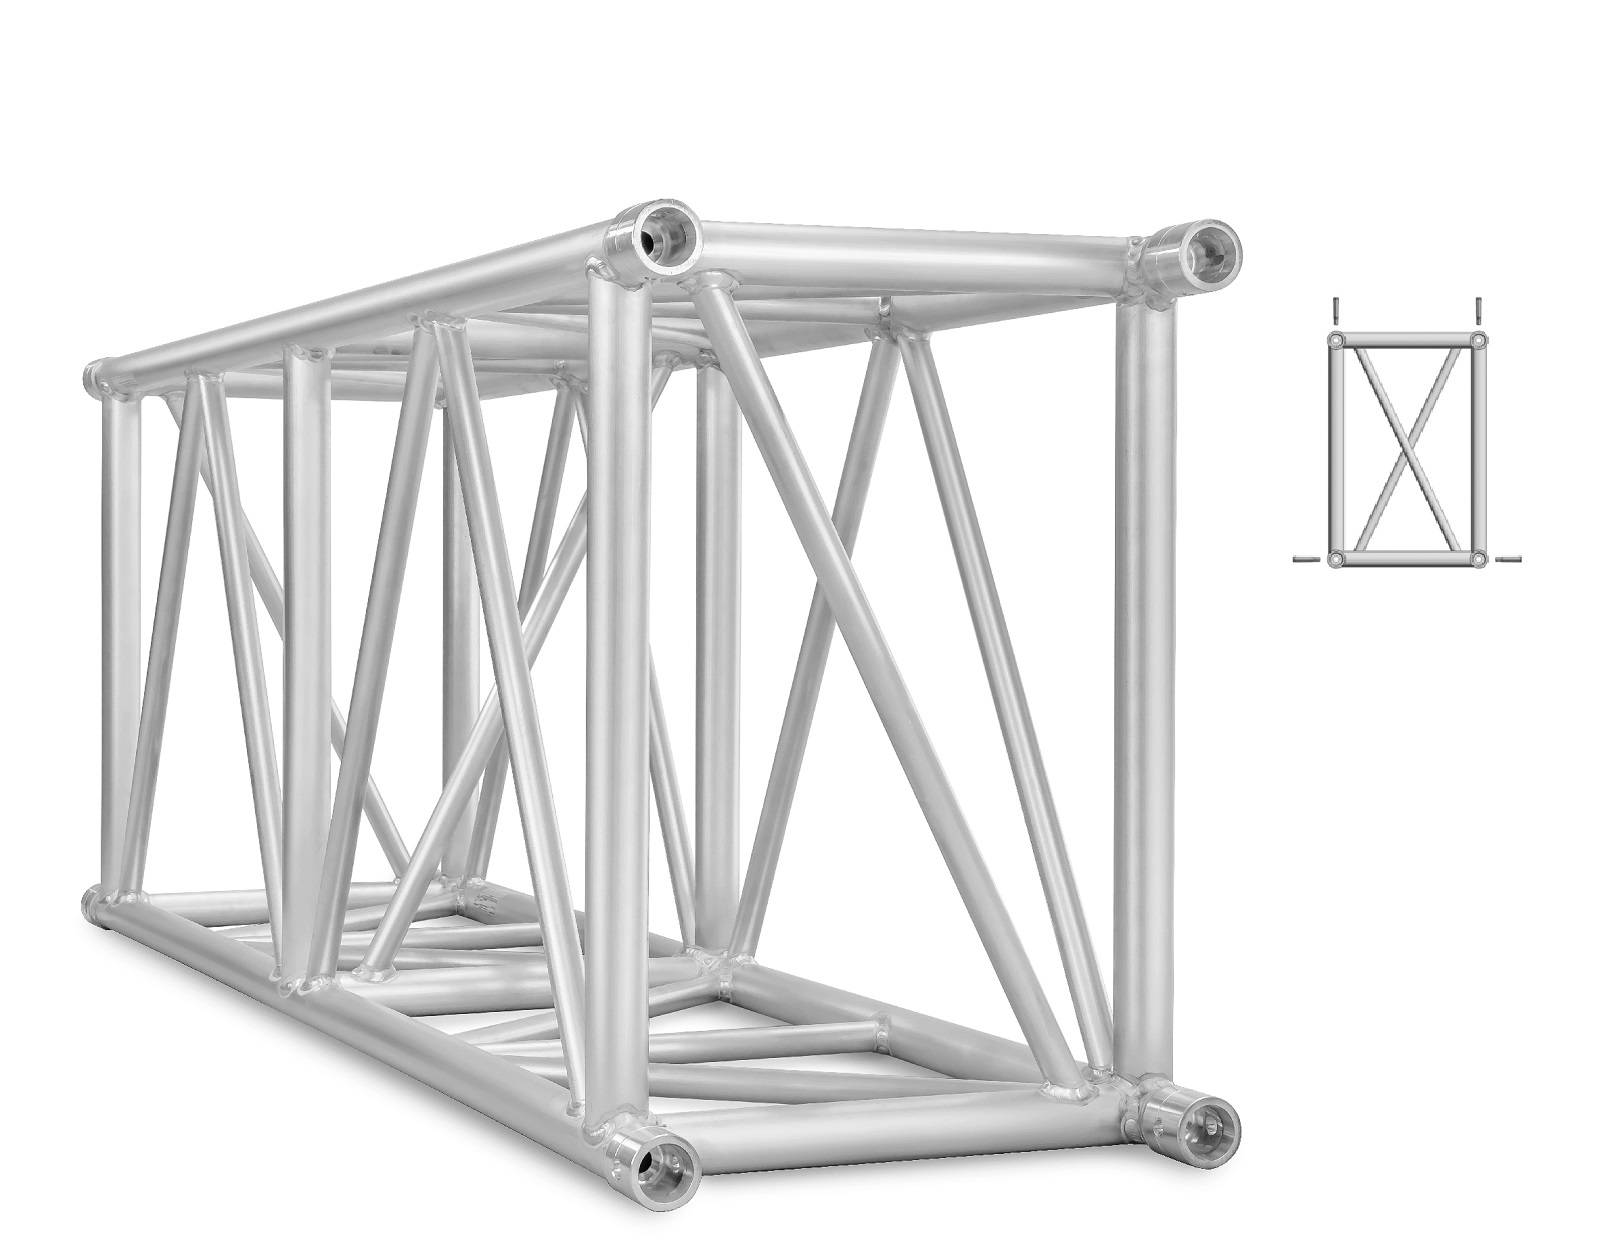 M760 - High Capacity truss range